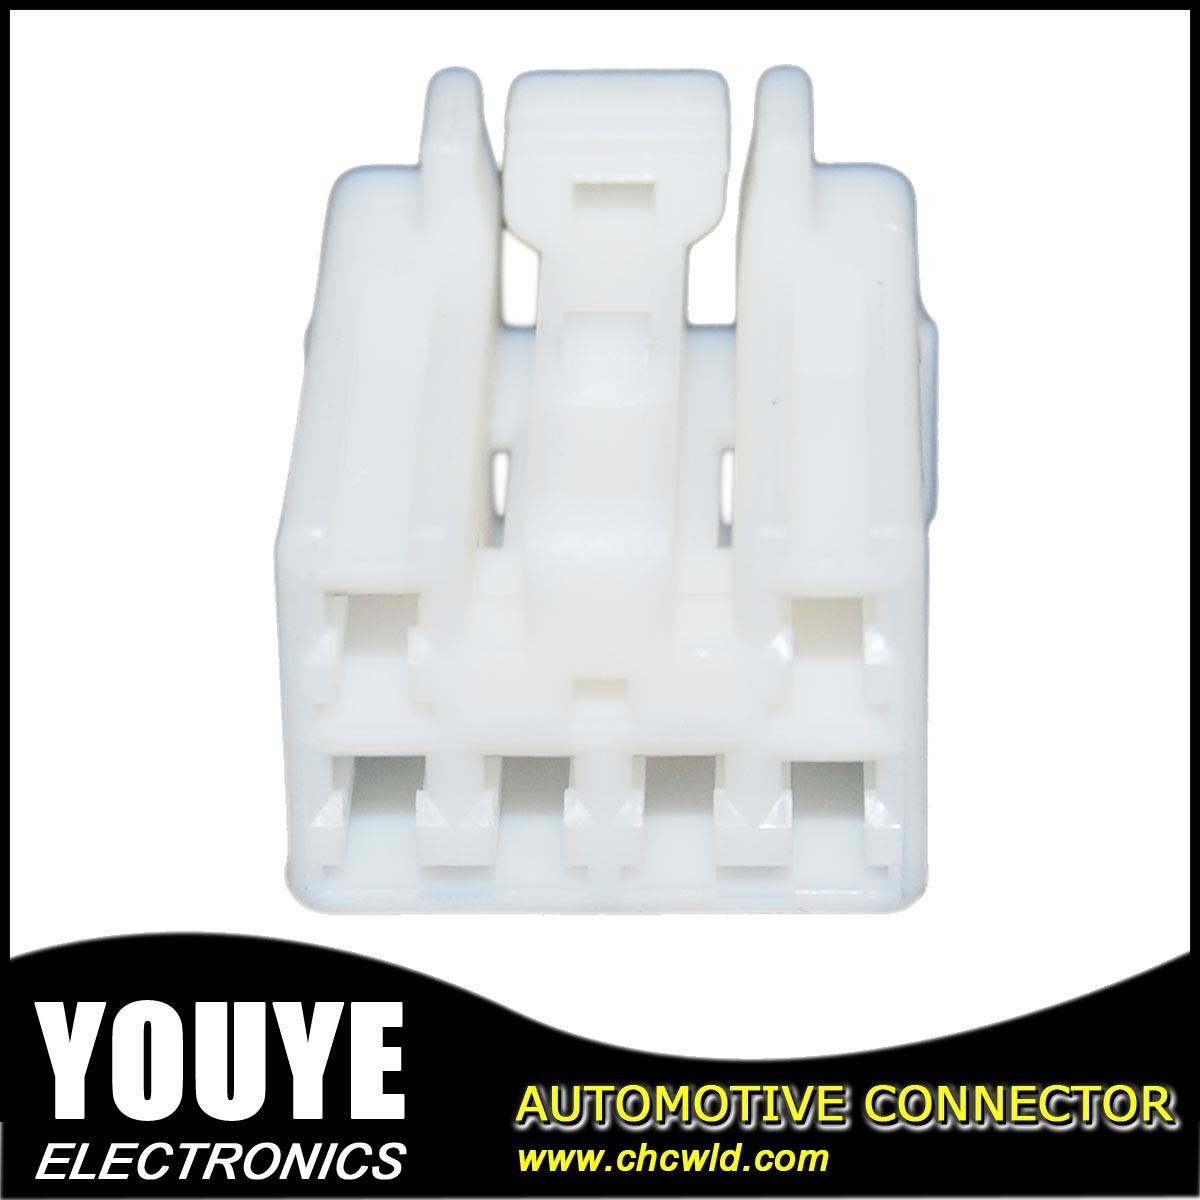 Yy7064-2.2-11 6 P PBT Automative Wire Connector for Etios